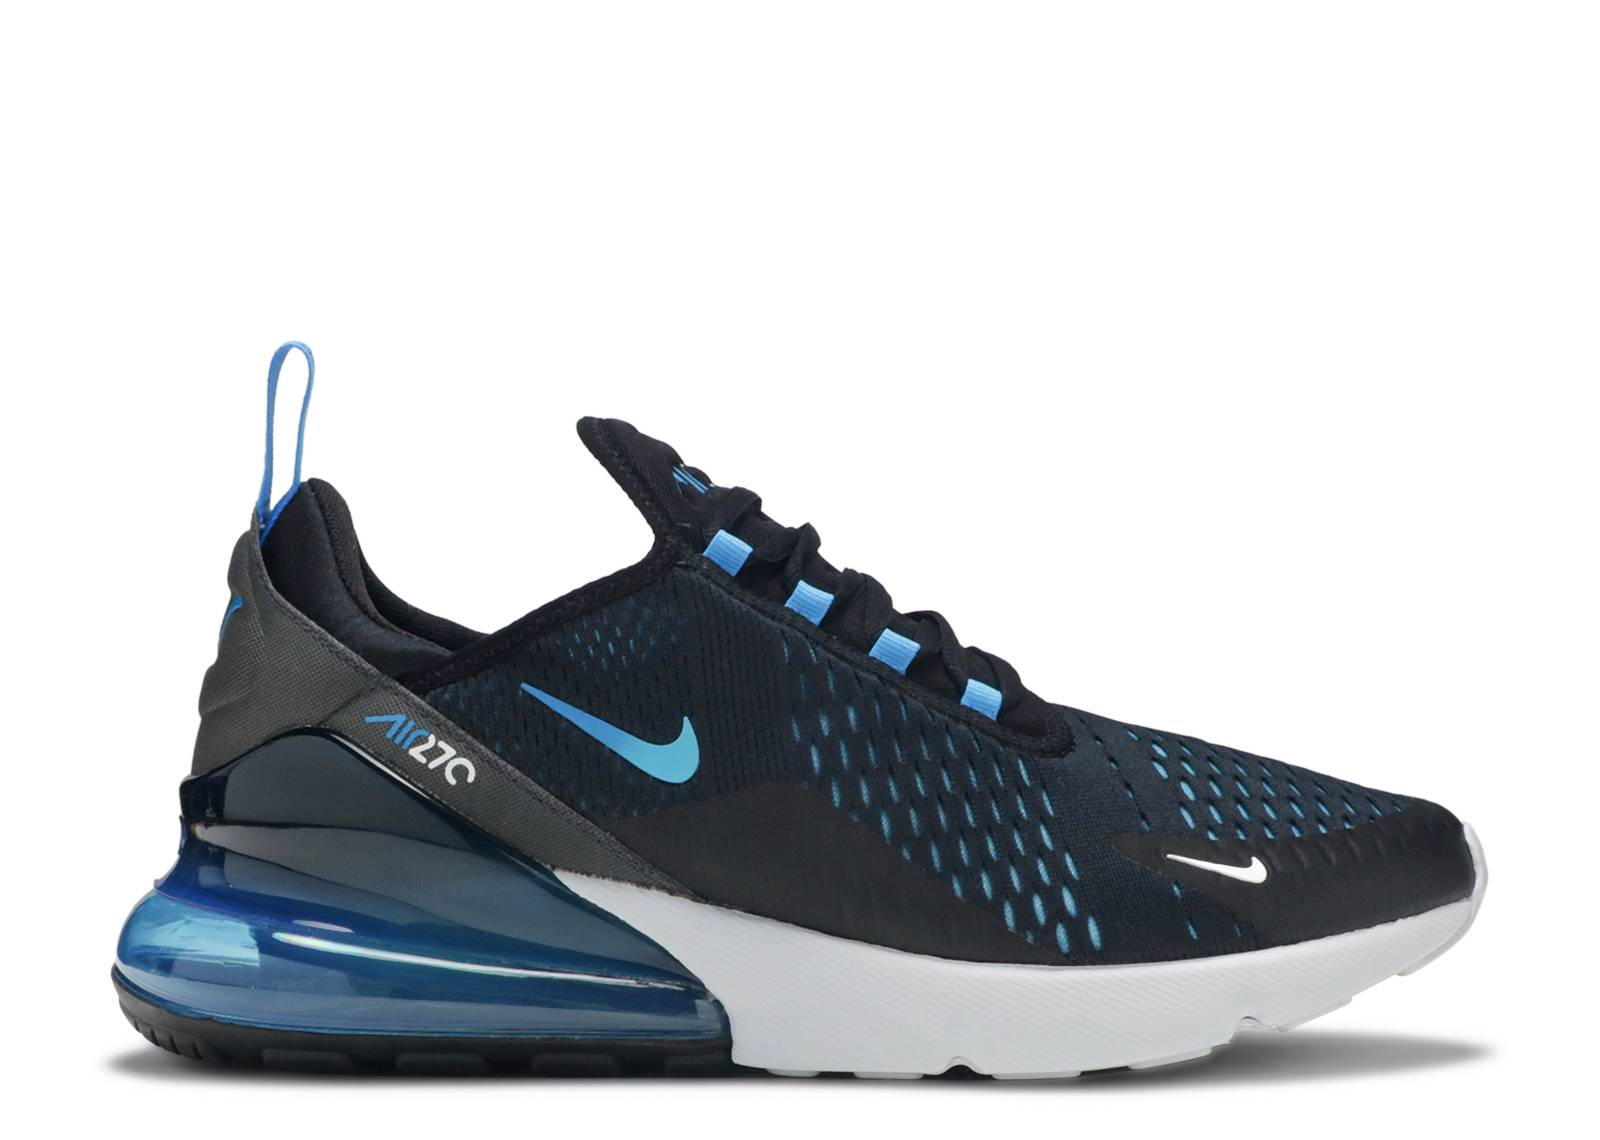 Air Max 270 Blue Fury Nike Ah8050 019 Black Photo Blue